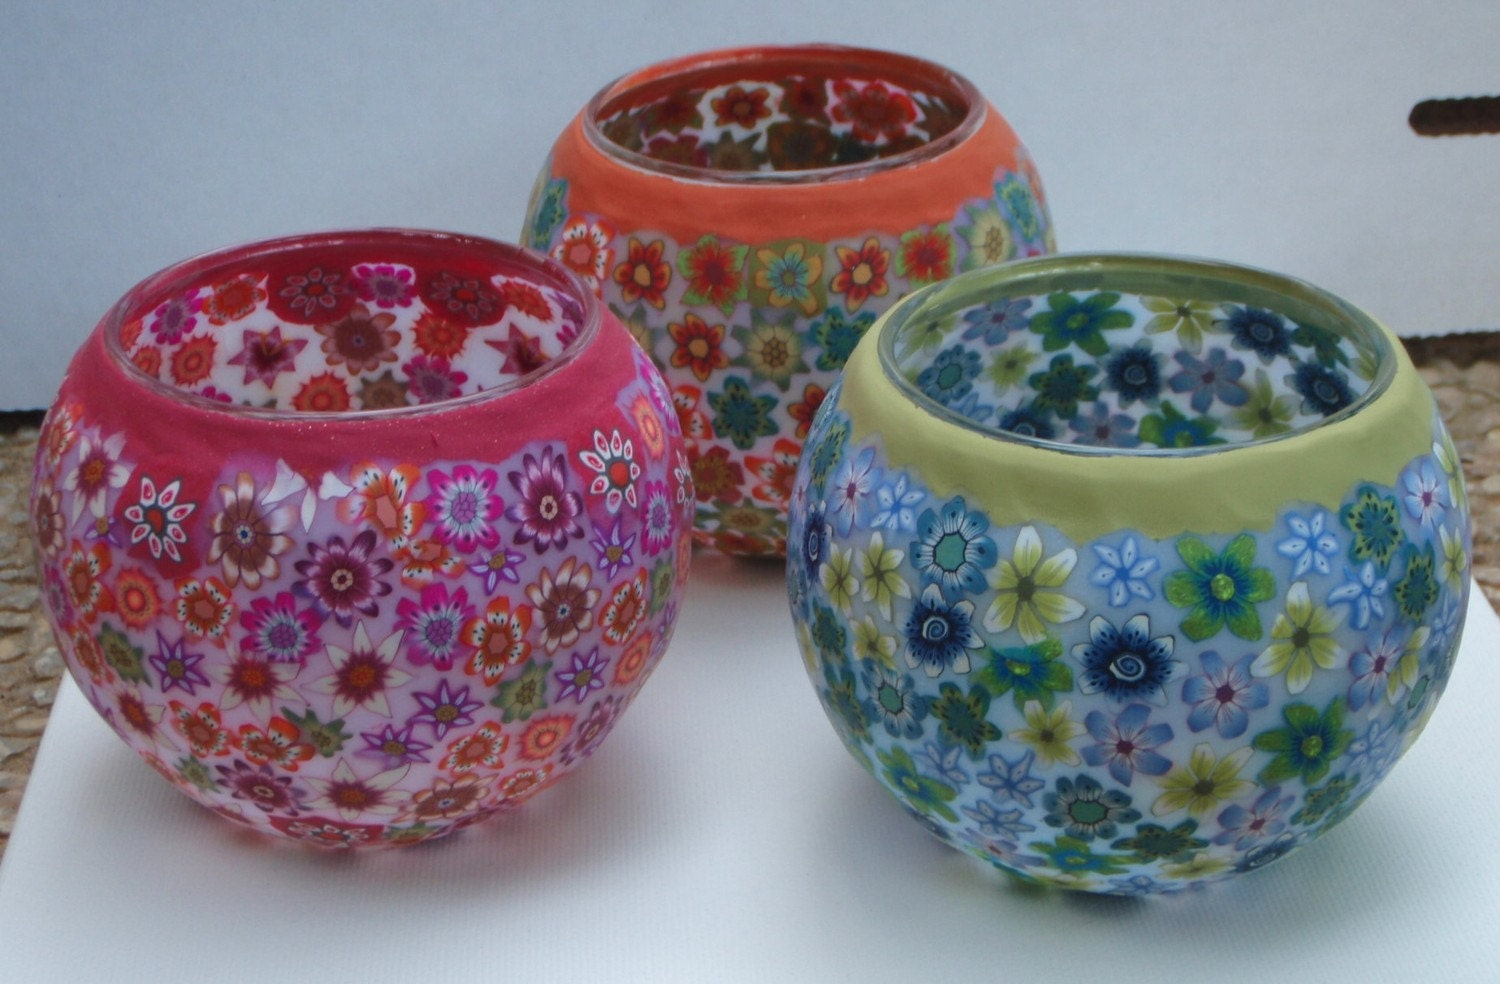 Decorative Candle Holders Trinas Trinketts Part 24 The Polymer Clay Artwork Of The Pceteam